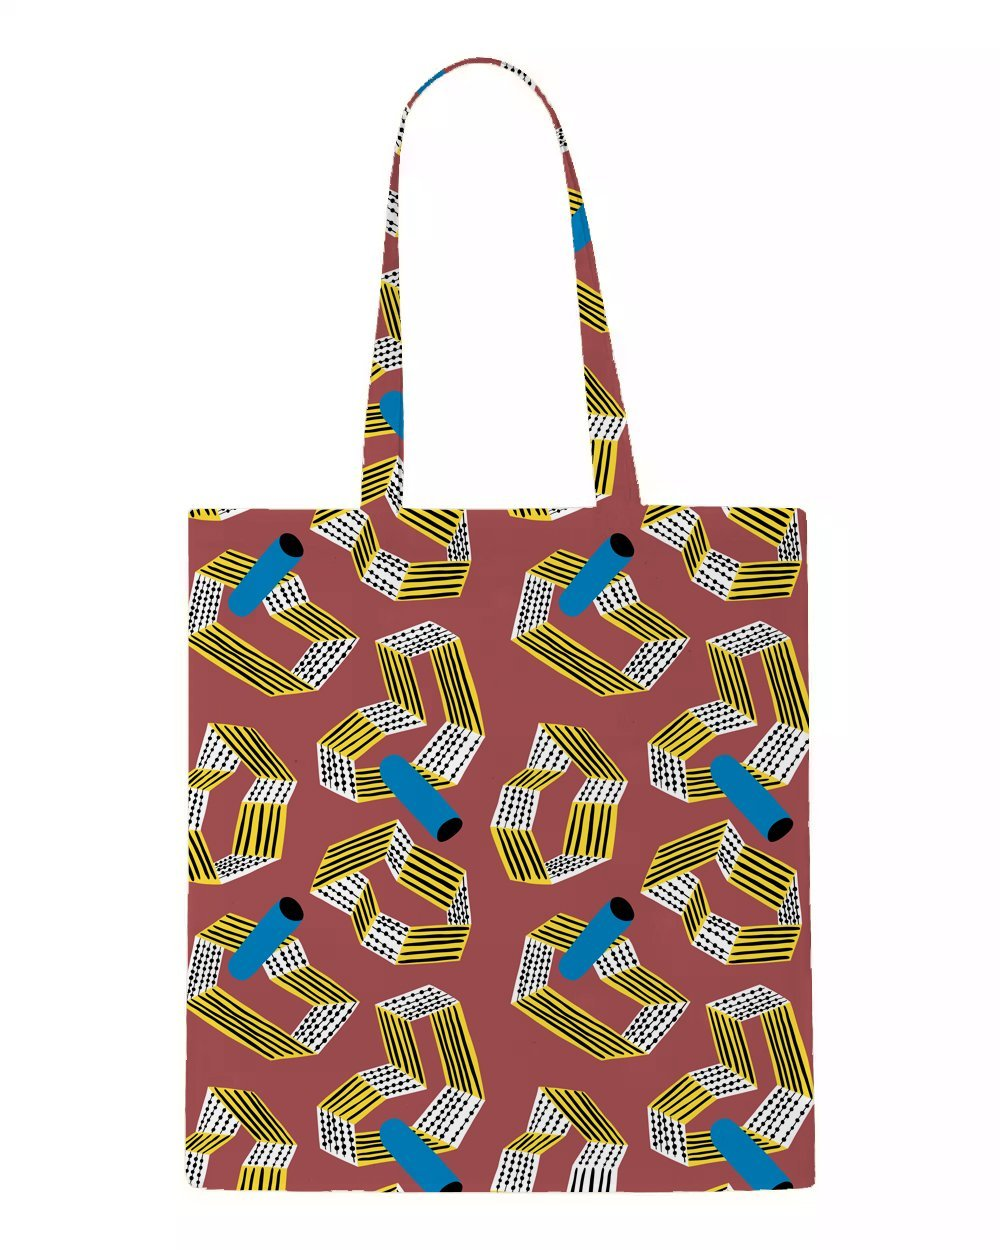 Bawa Tote Bag - Manika Tote Bags The Great Indoors